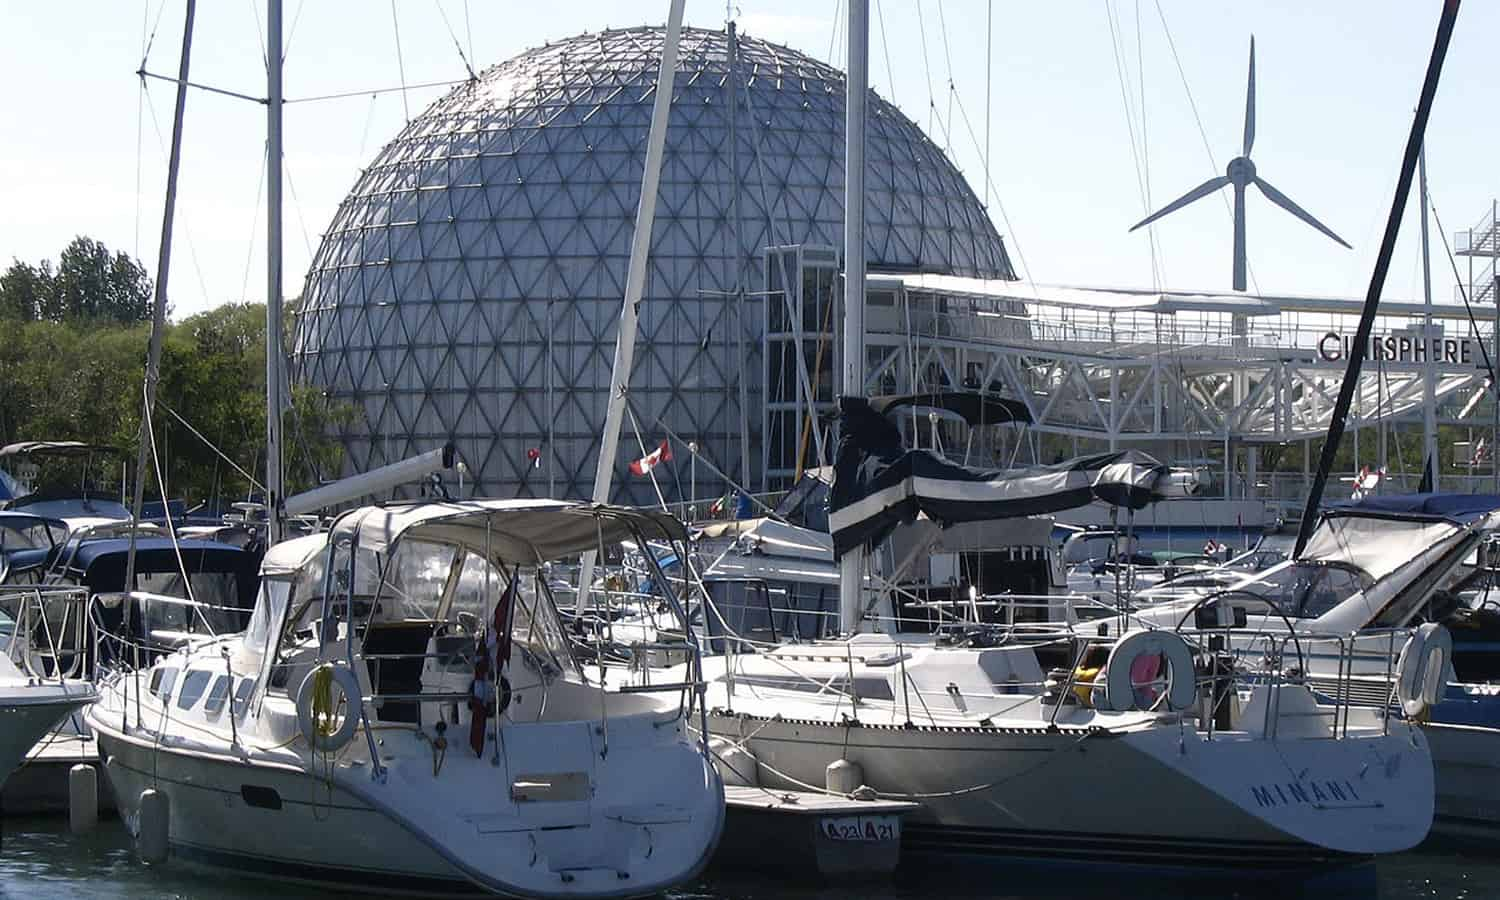 Sailboats at Ontario Place - Wikipedia